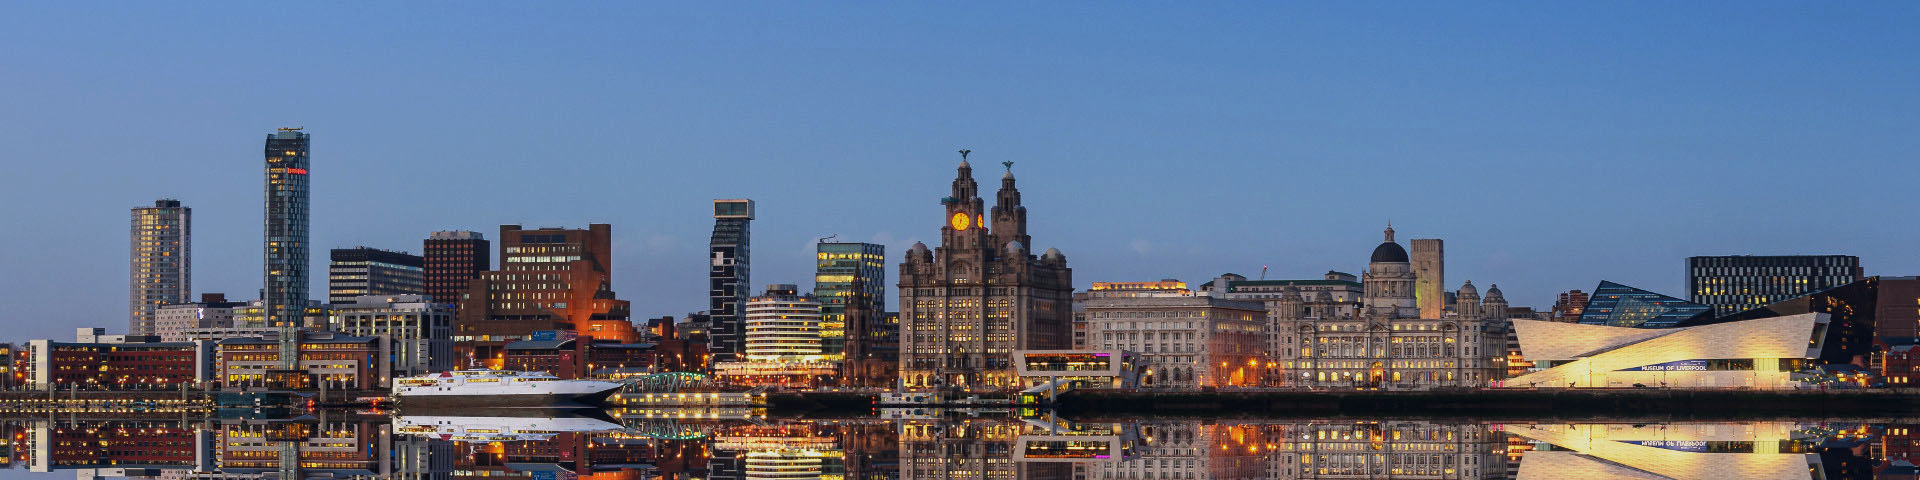 Liverpool skyline hero edit